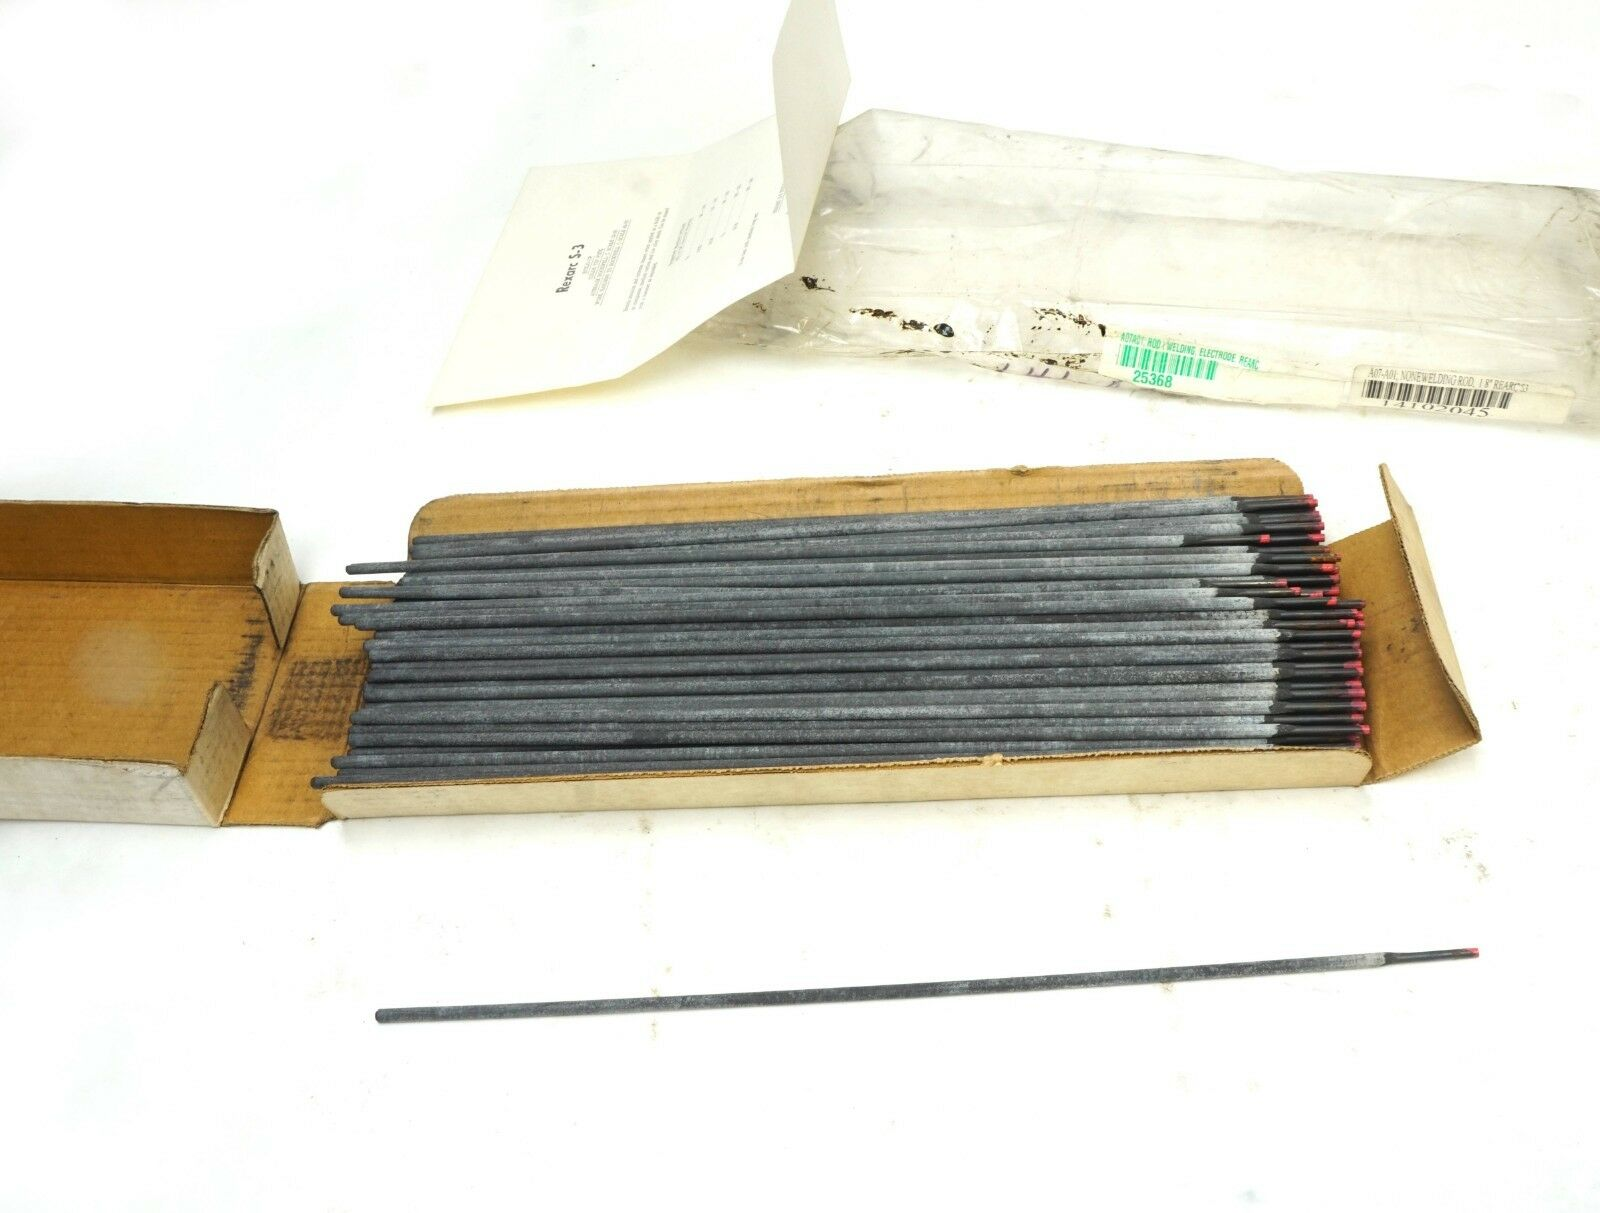 rexarc welding electrodes